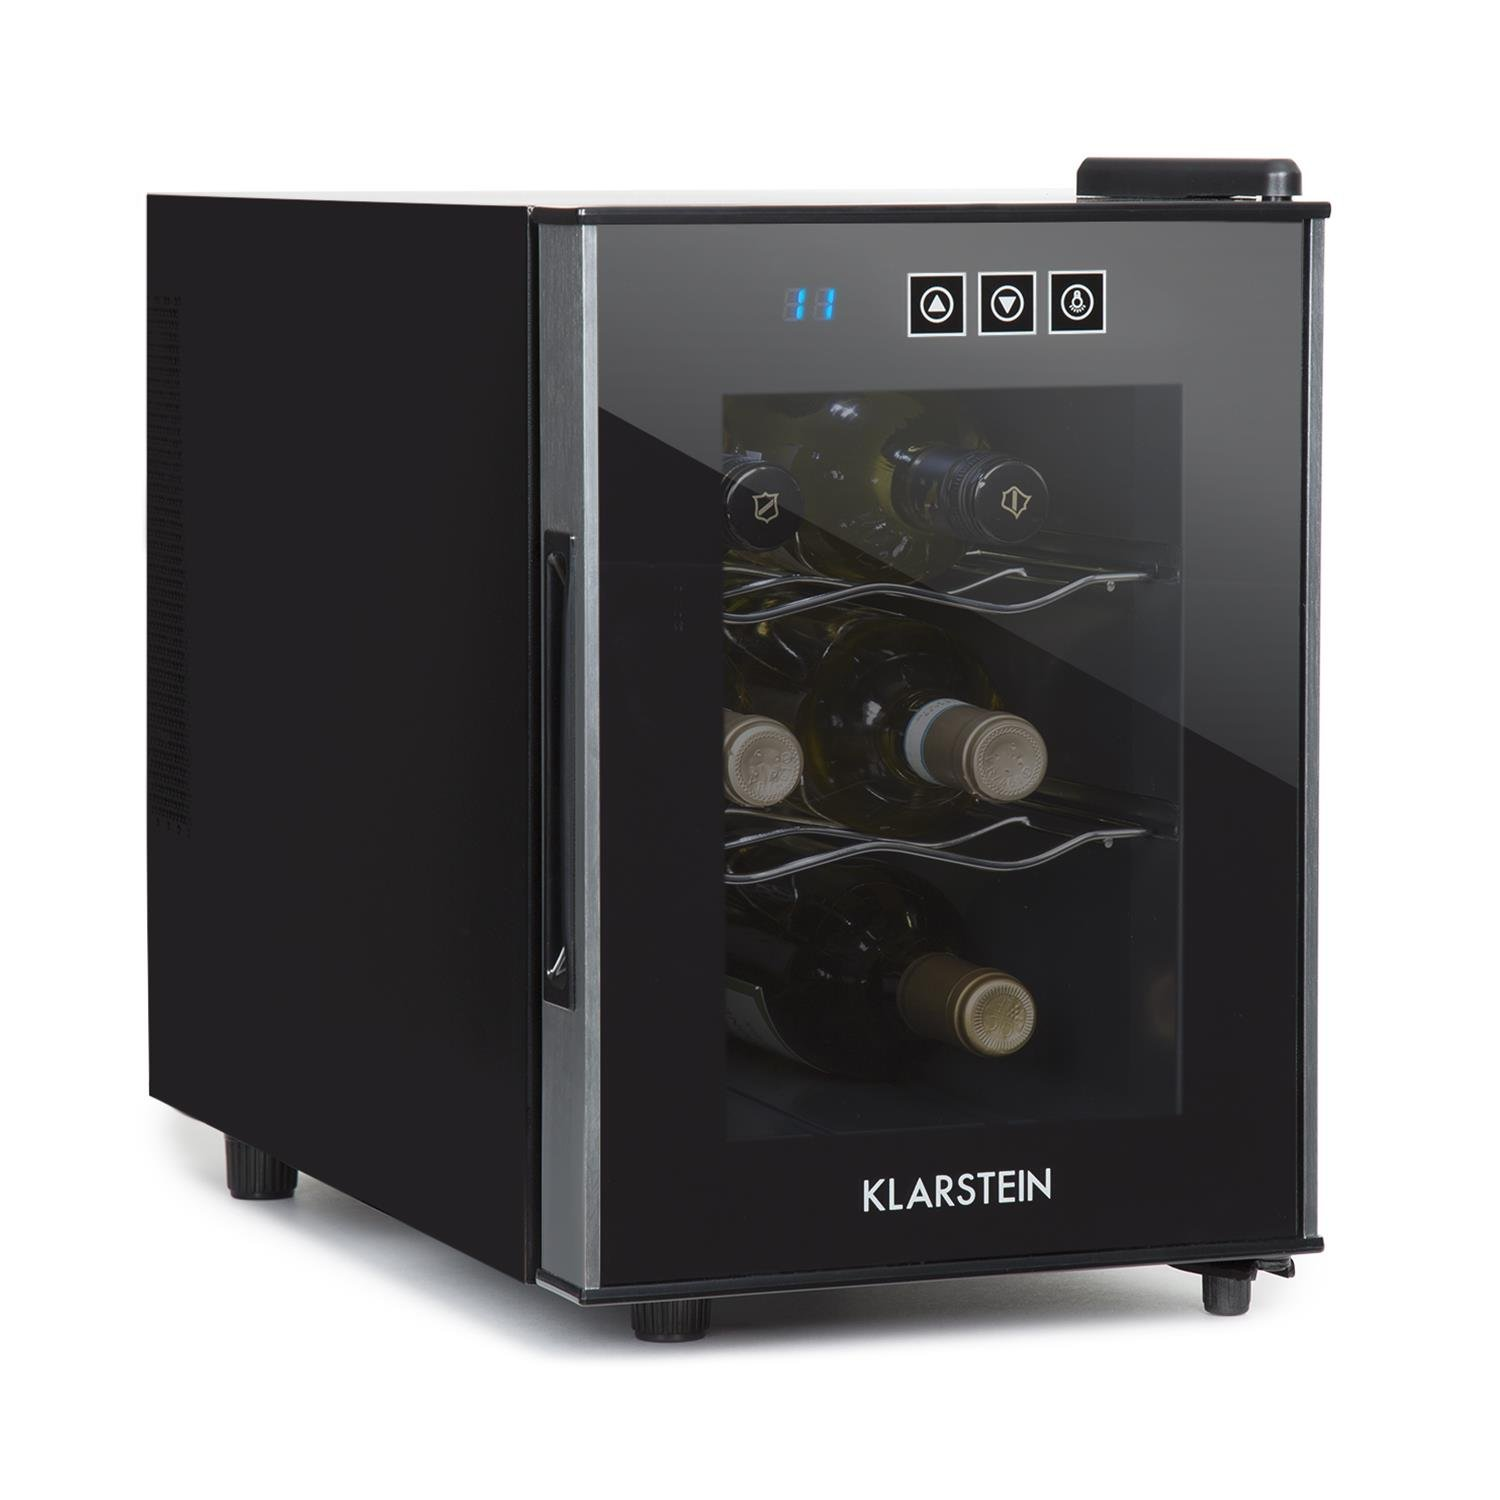 Klarstein Ceres Wine Refrigerator • Wine Fridge • Cooler • 16 Litres • 4 Bottles • Touch • 38 dB in Operation • Glass Door • Setting from 12 to 18 Degrees • Compact • Black